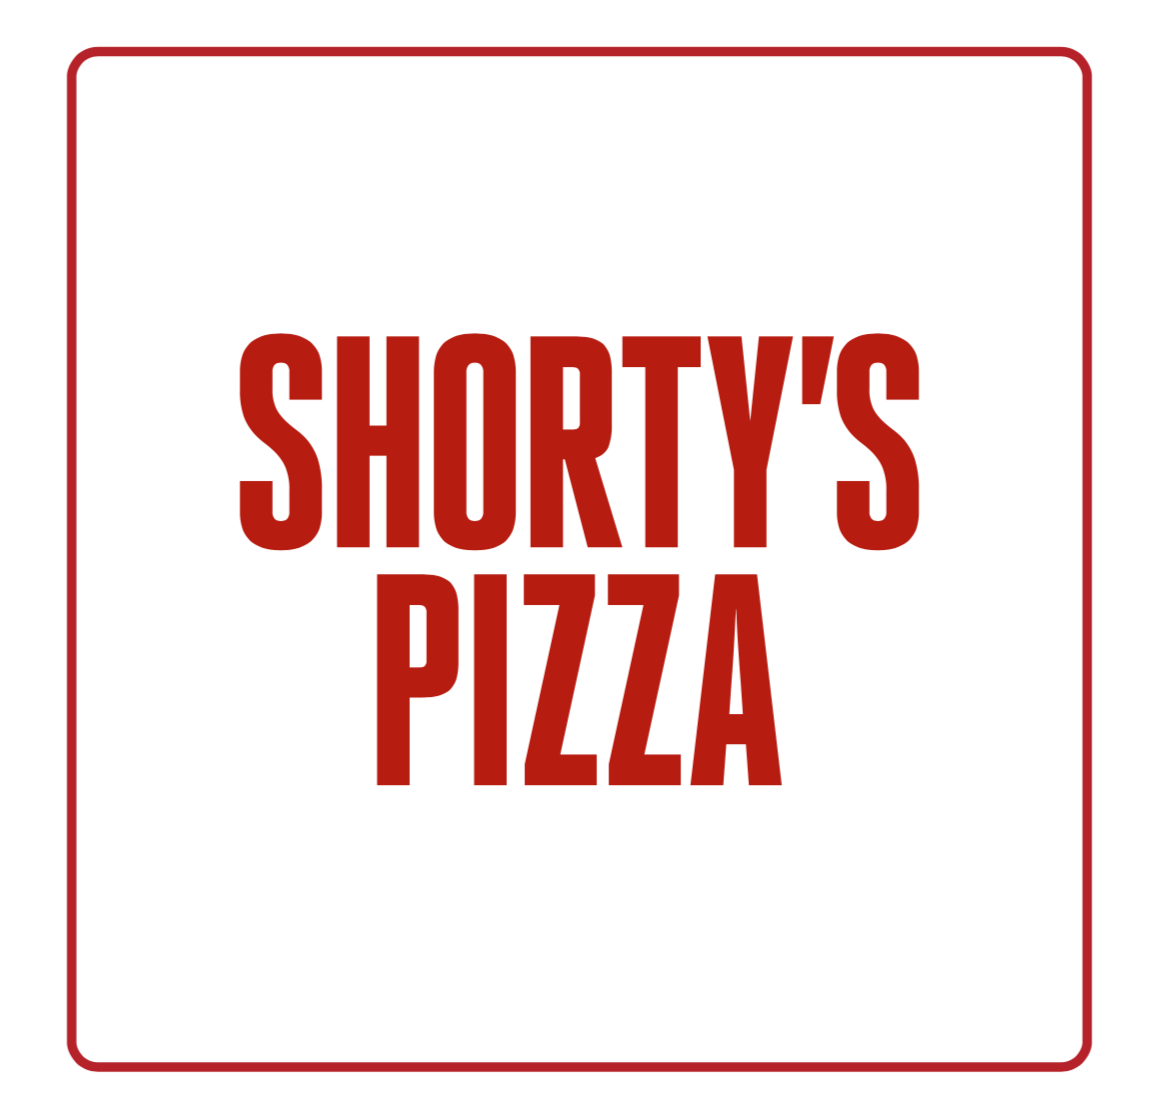 SHORTY'S PIZZA